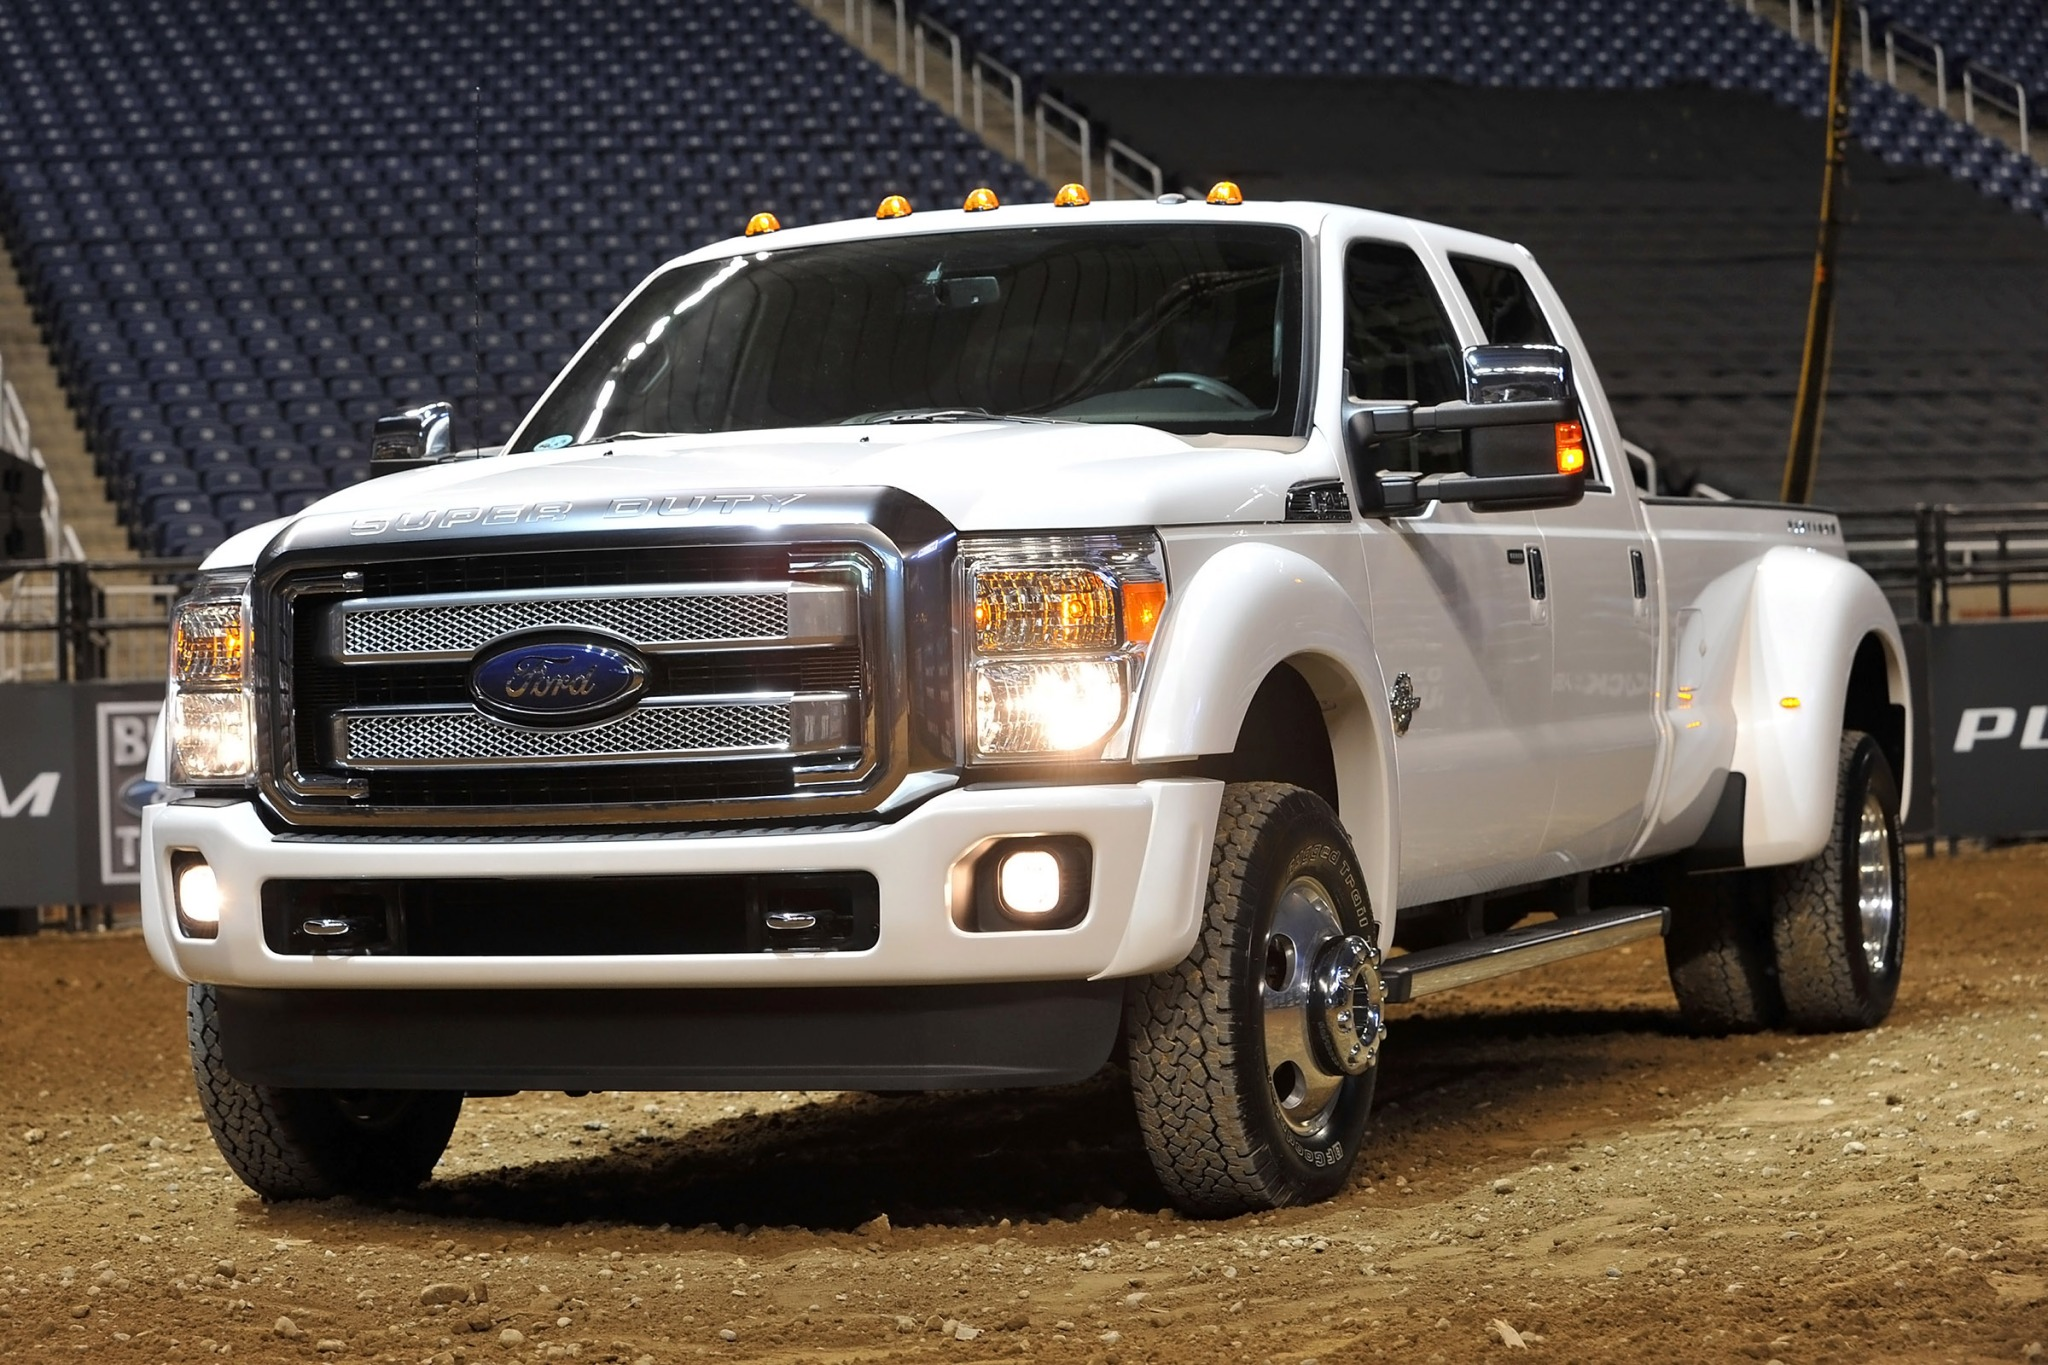 2015 Ford F-450 Super Dut interior #1